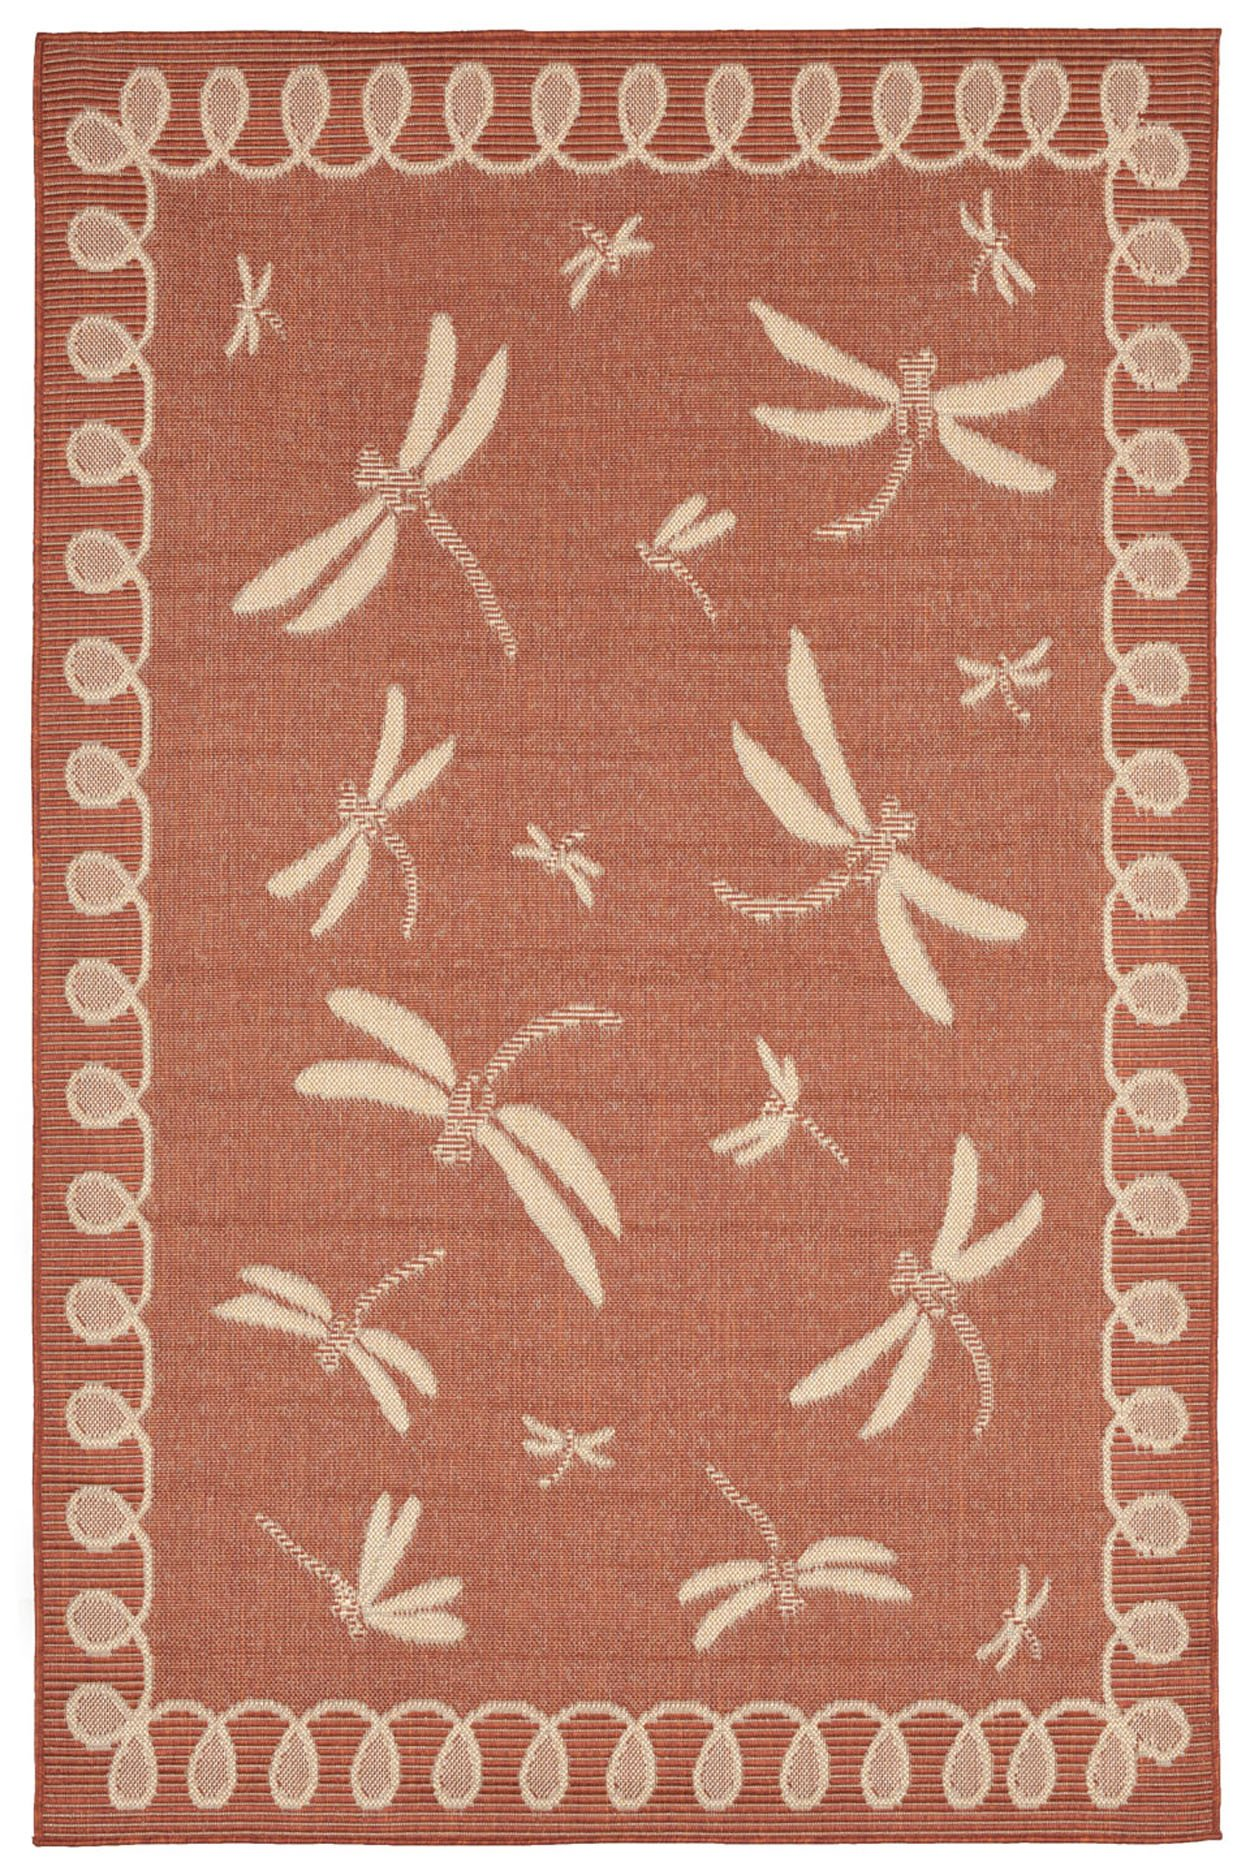 AREA RUGS - ''DRAGONFLY DANCE'' RUG - TERRACOTTA - 39'' x 59'' - INDOOR OUTDOOR DRAGONFLY RUG